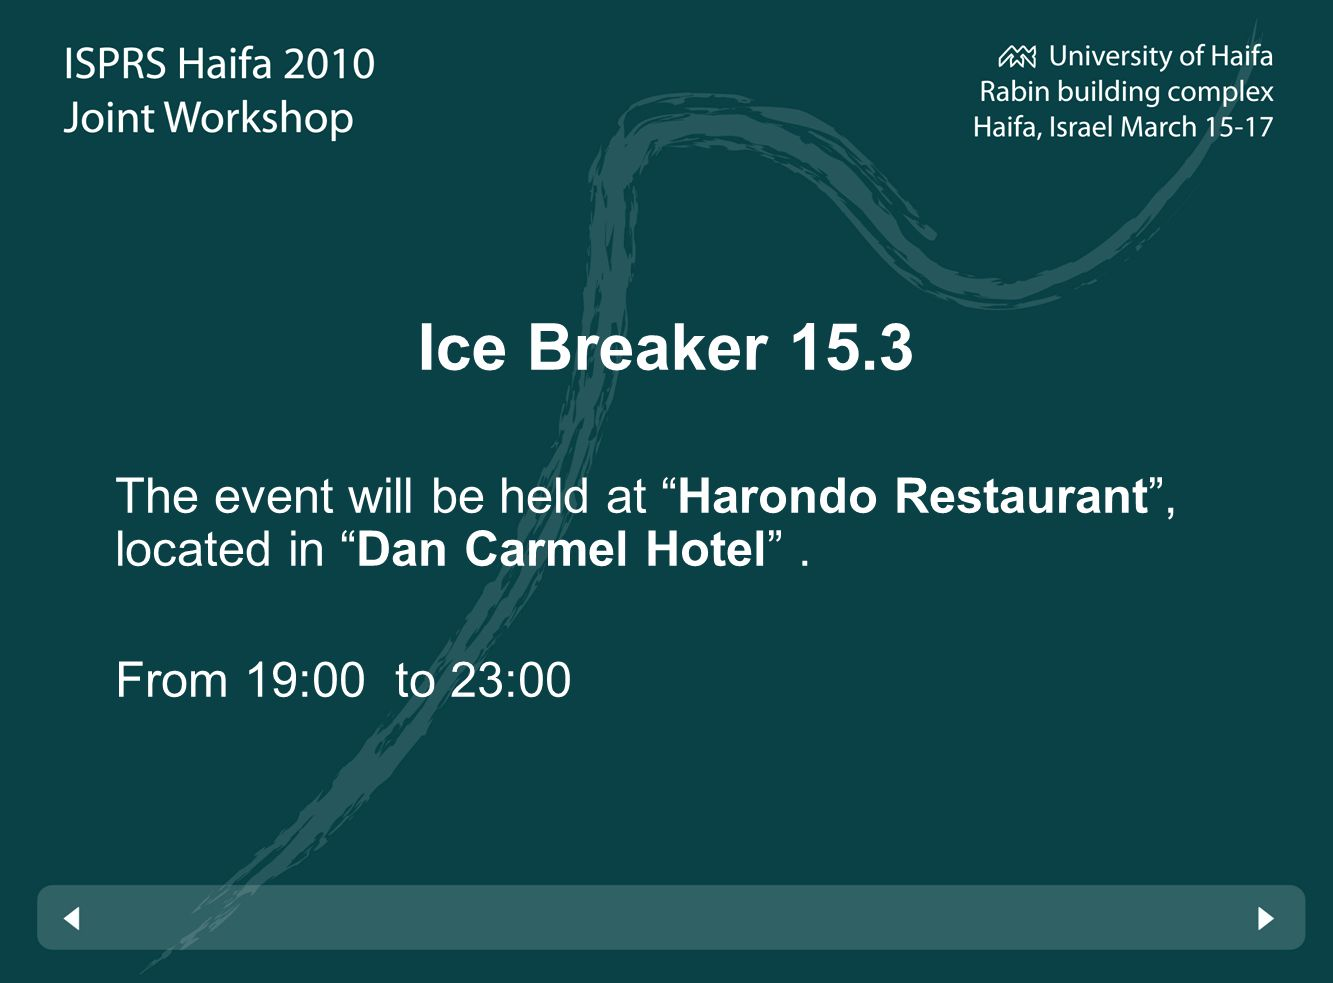 Ice Breaker 15.3 The event will be held at Harondo Restaurant, located in Dan Carmel Hotel.